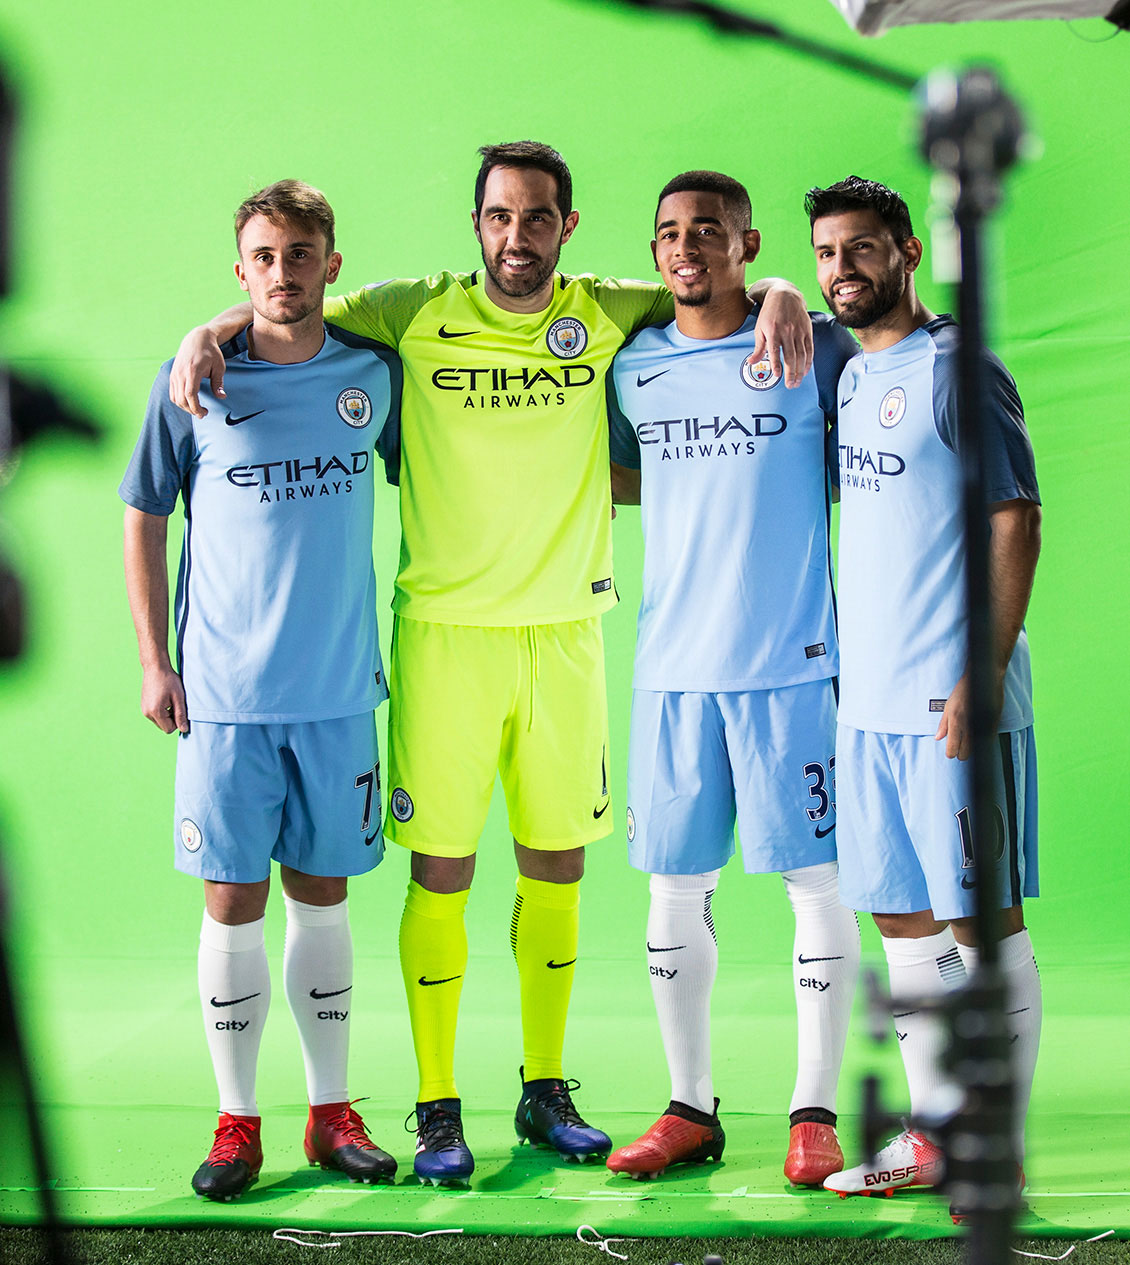 City players take part in a custom Wix advert